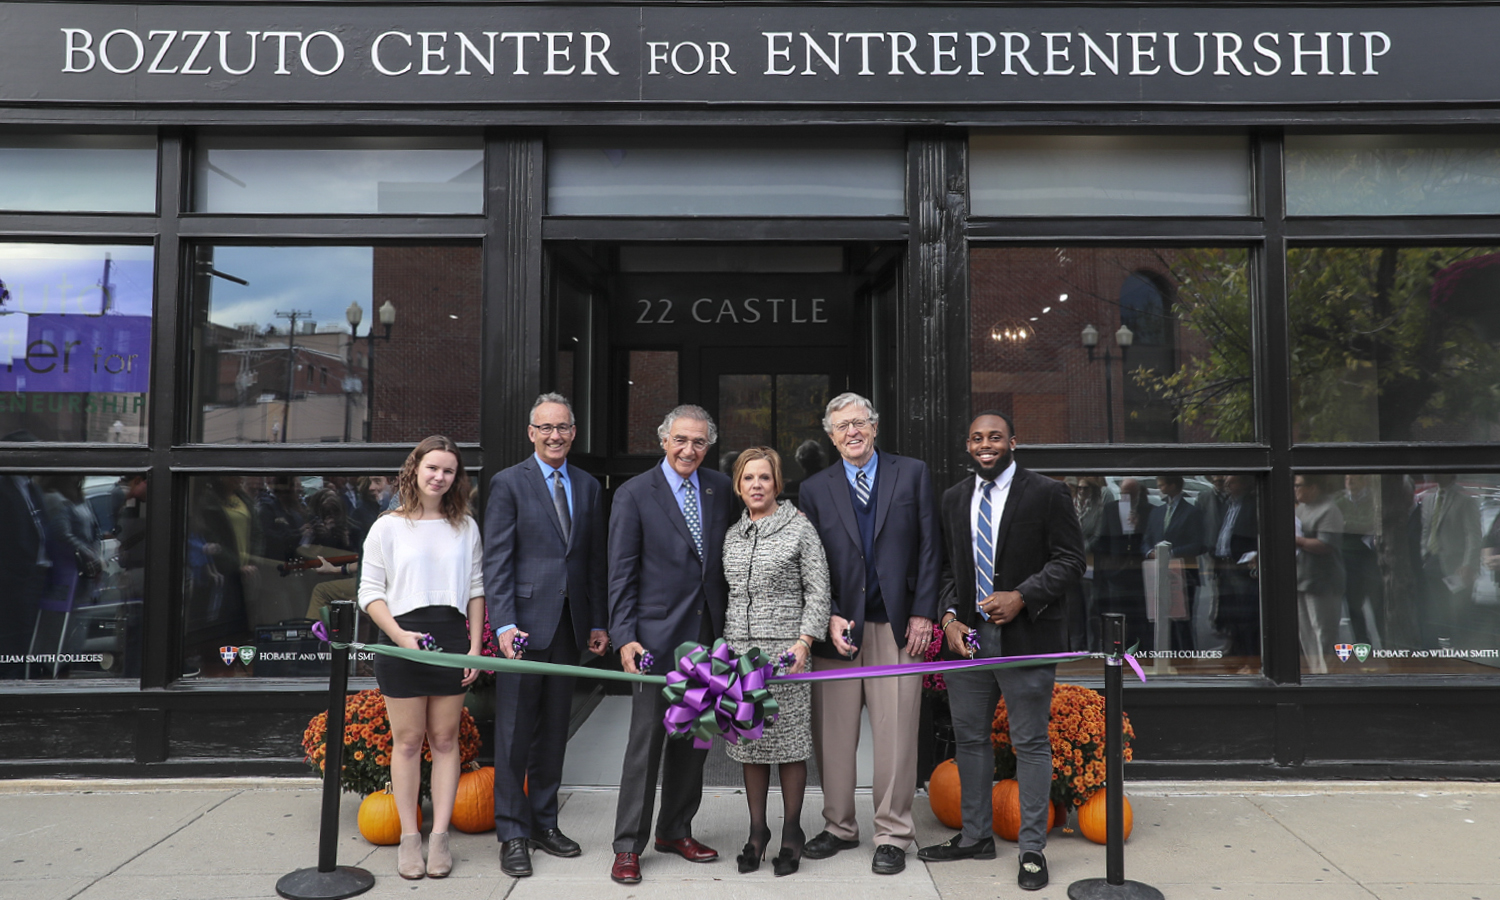 Chloe Elmer '20, Professor of Economics Thomas Drennen, Chair of the Board of Trustees Thomas S. Bozzuto '68 L.H.D. '18, Interim President Patrick A. McGuire L.H.D. '12and Al Smith '19 pose for a photo during the ribbon cutting ceremony as part of the dedication of the new Bozzuto Center for Entrepreneurship in downtown Geneva, N.Y.